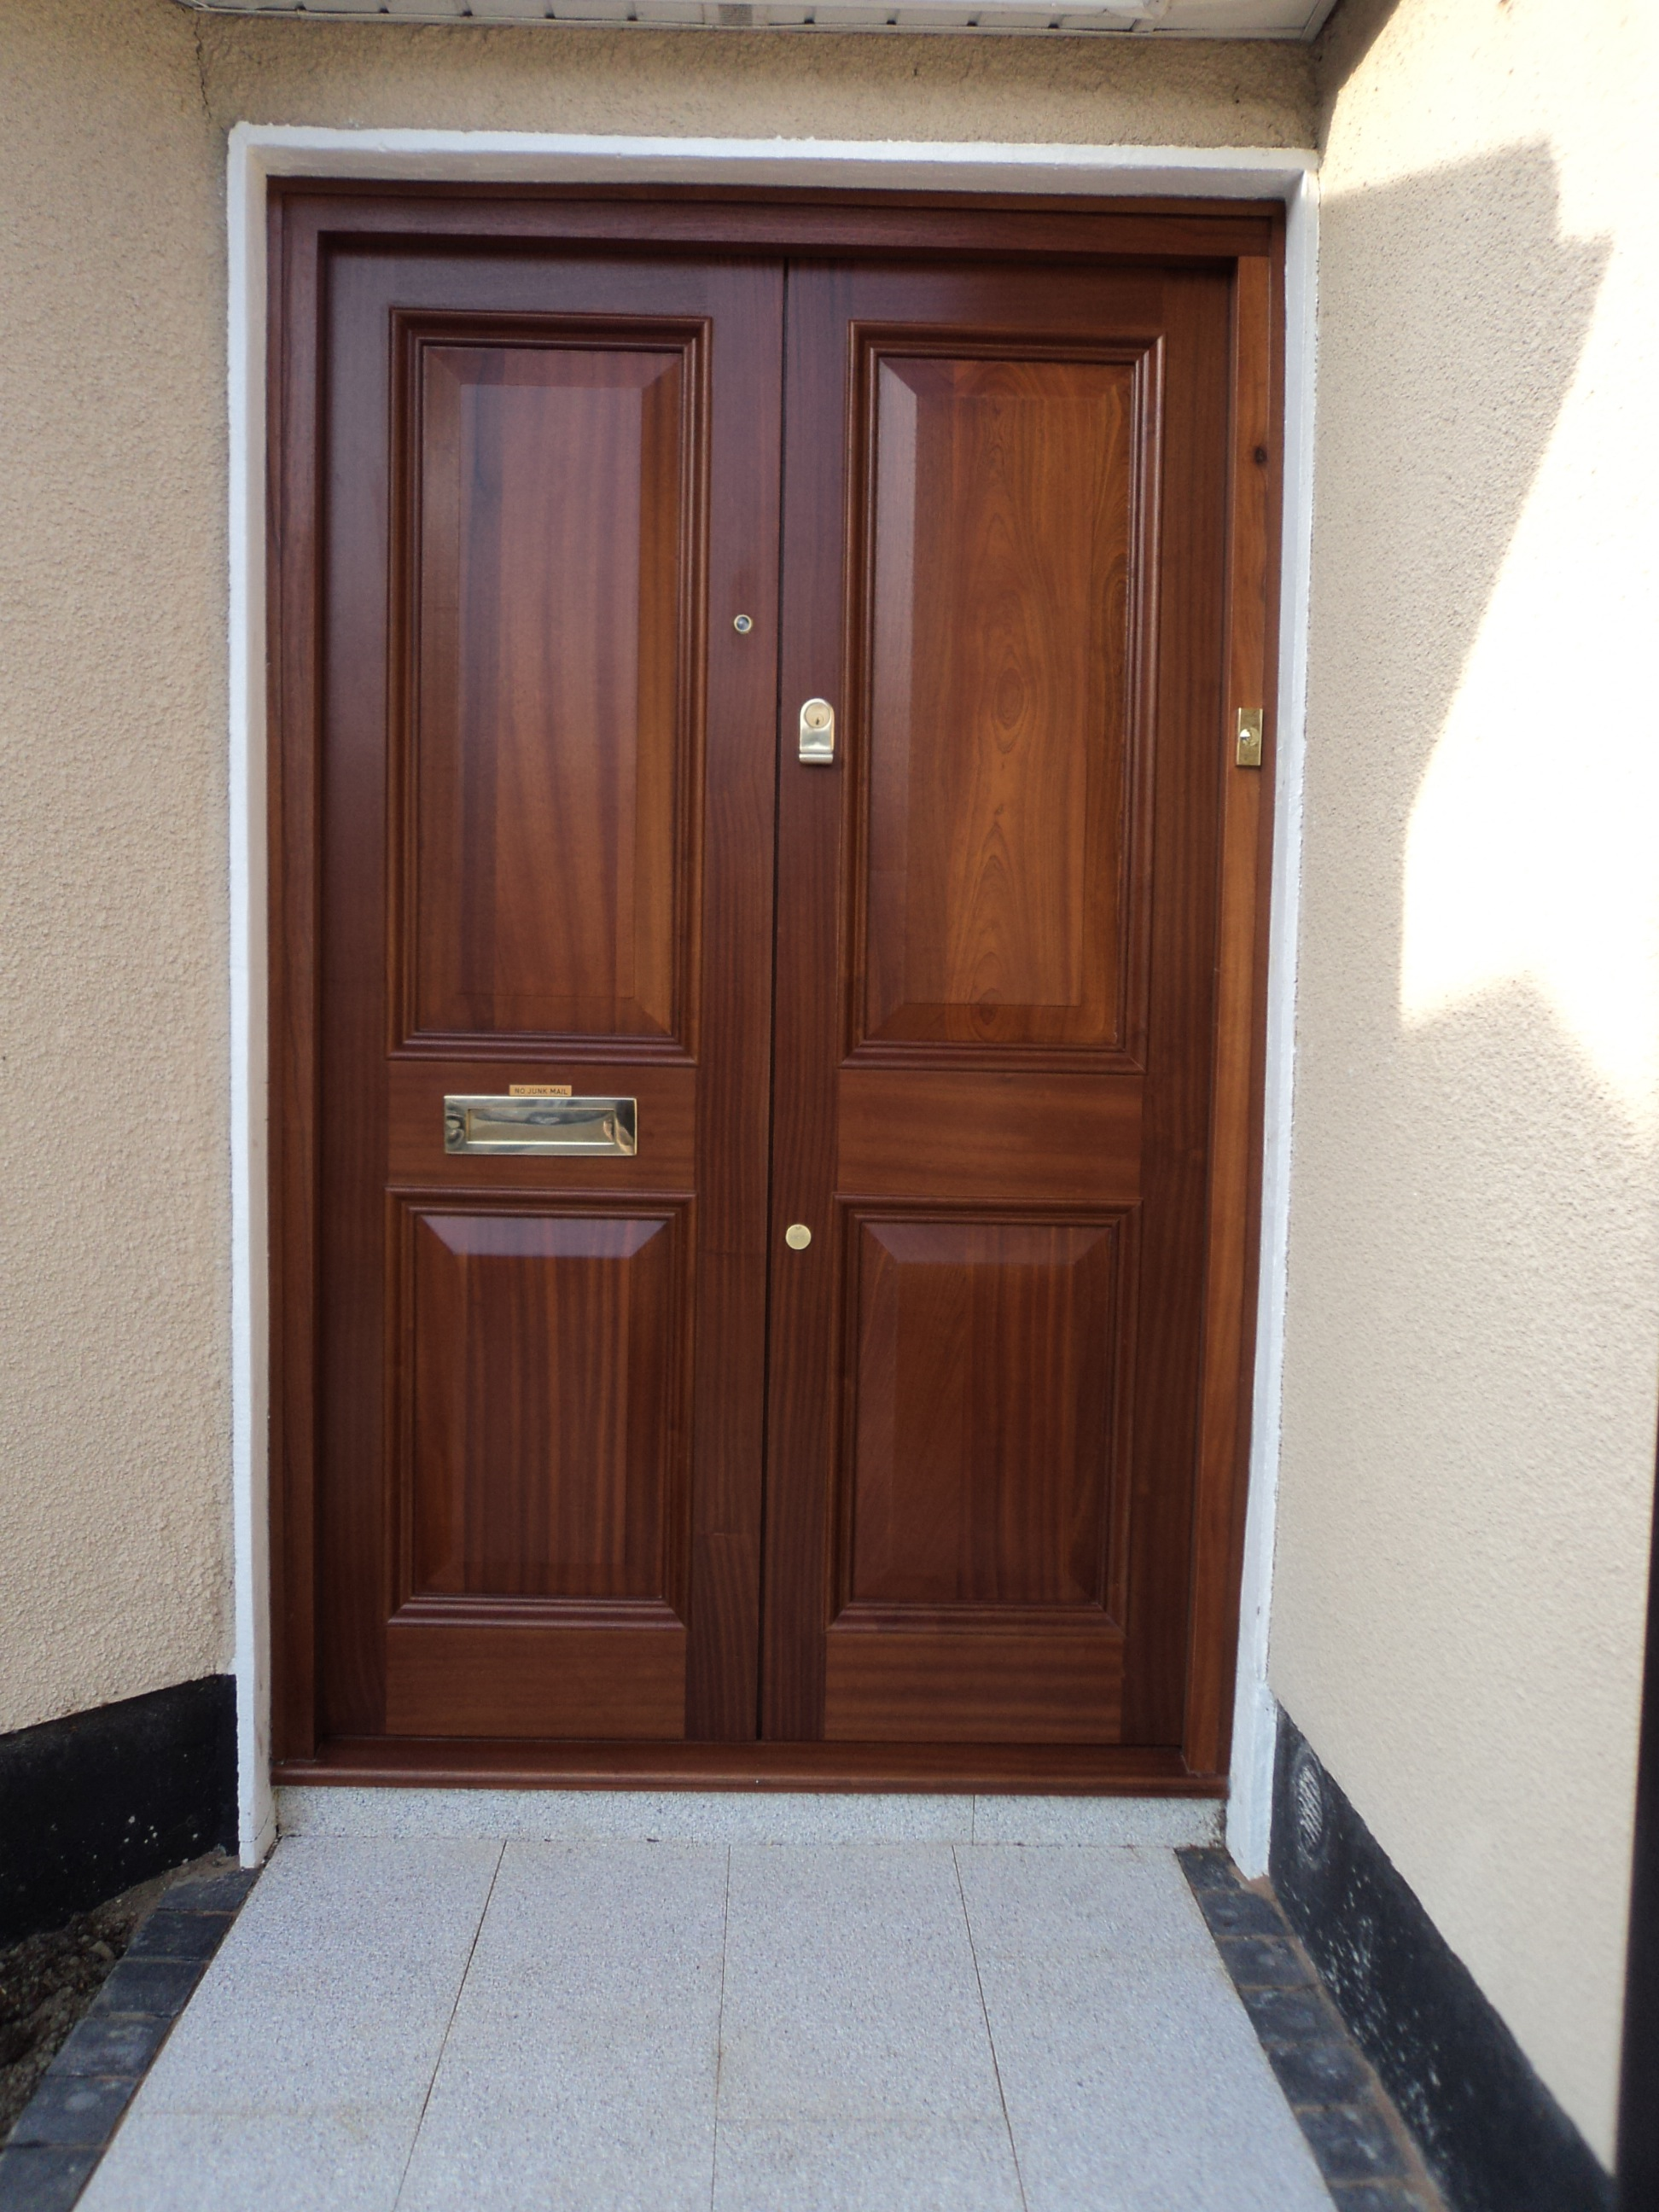 Images. Solid mahogany Double doors & Joinery | Higginbotham pezcame.com